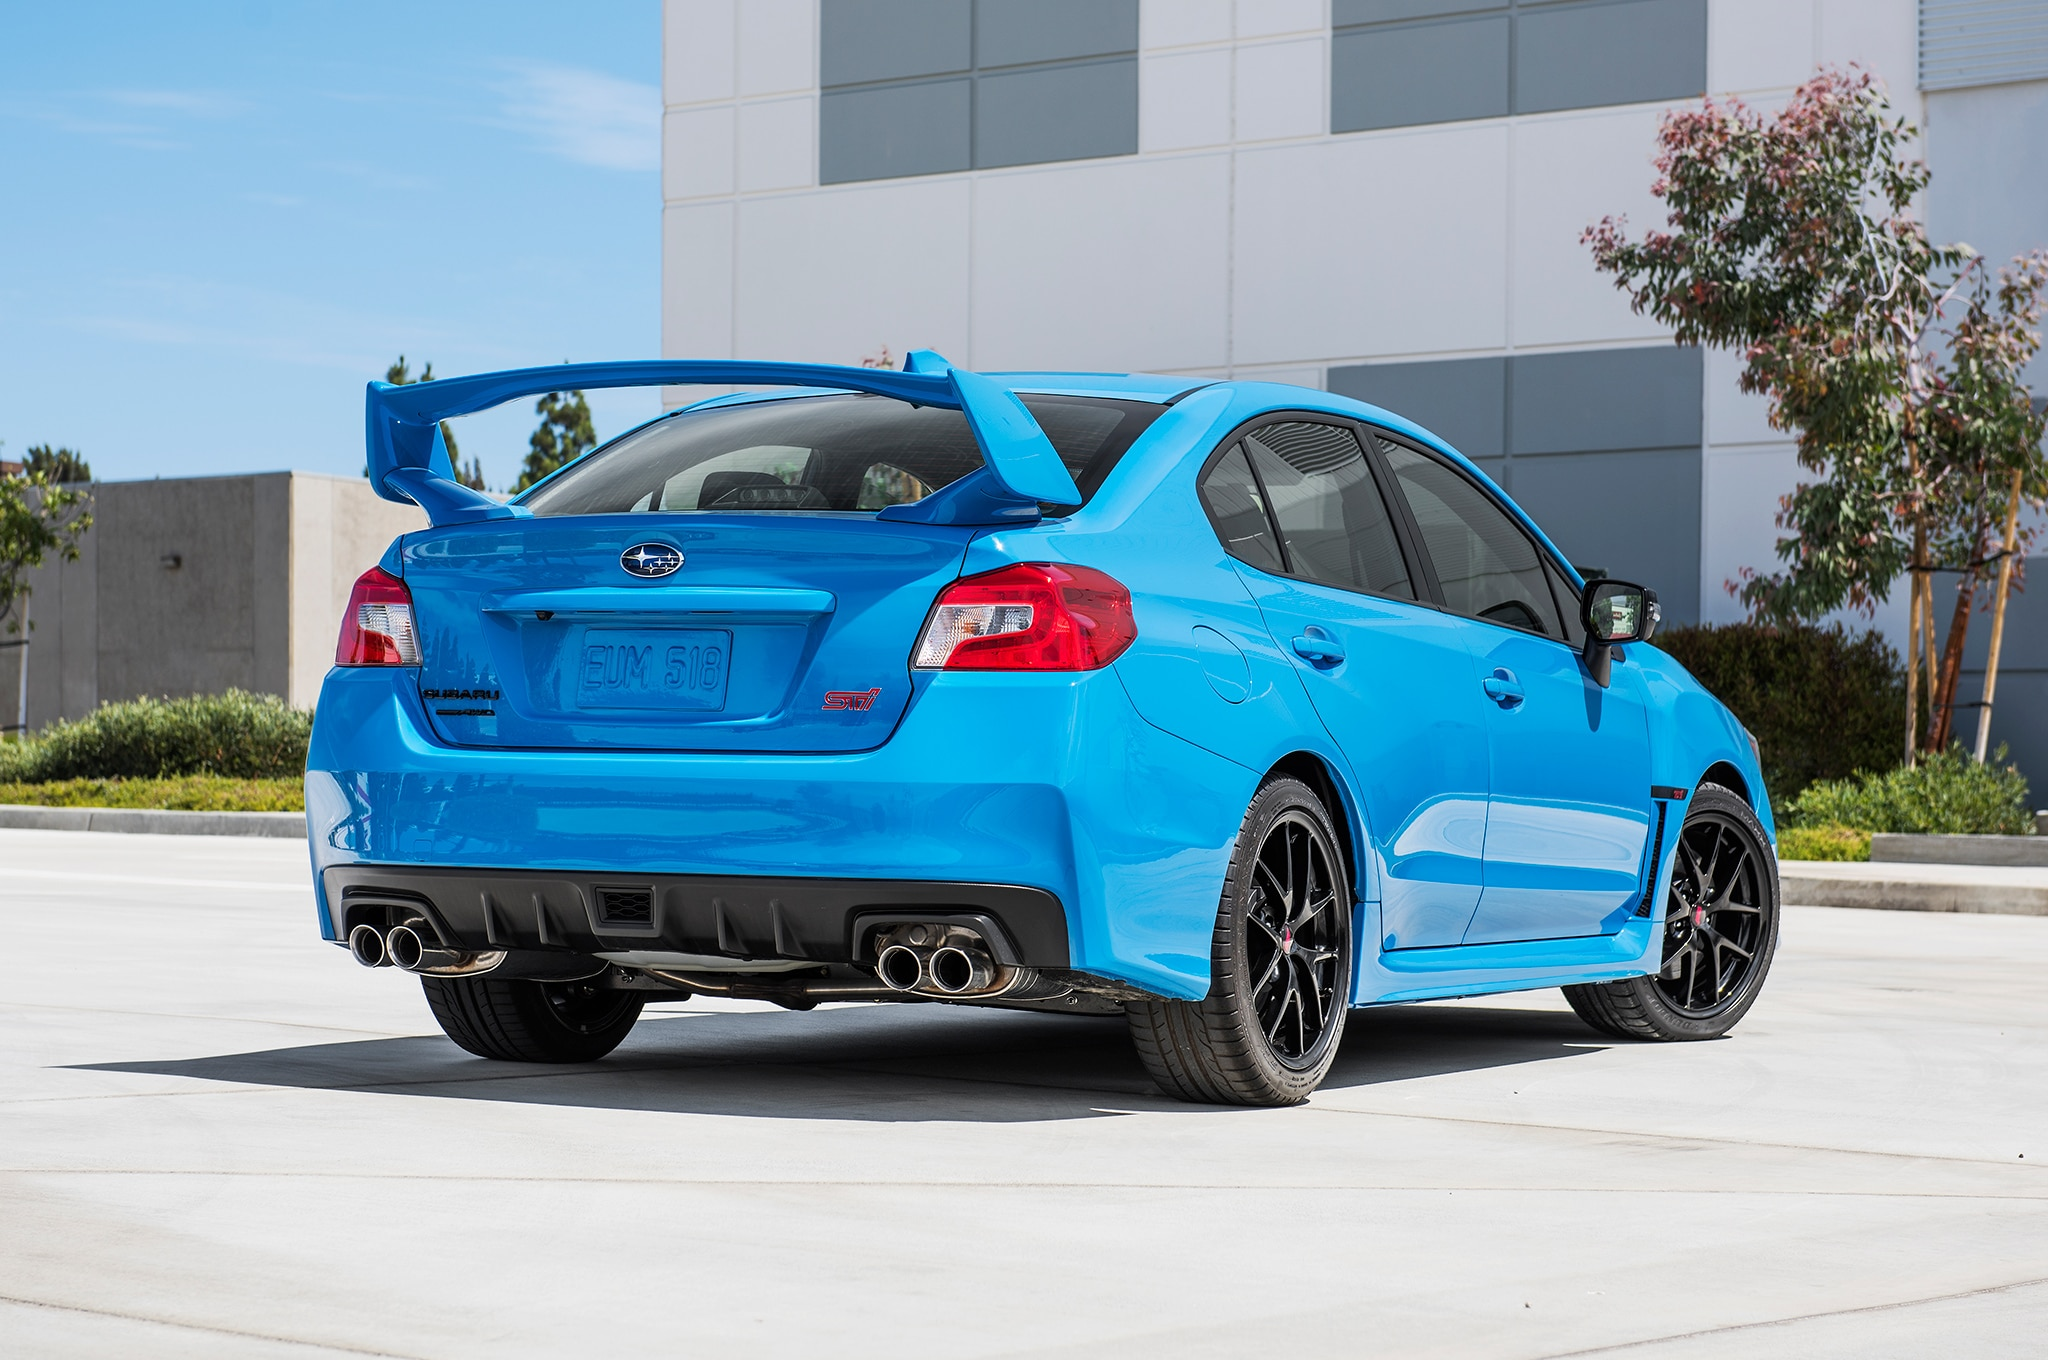 Subaru Sti 0-60 >> 2016 Subaru WRX, WRX STI Receive New Infotainment, Safety Systems